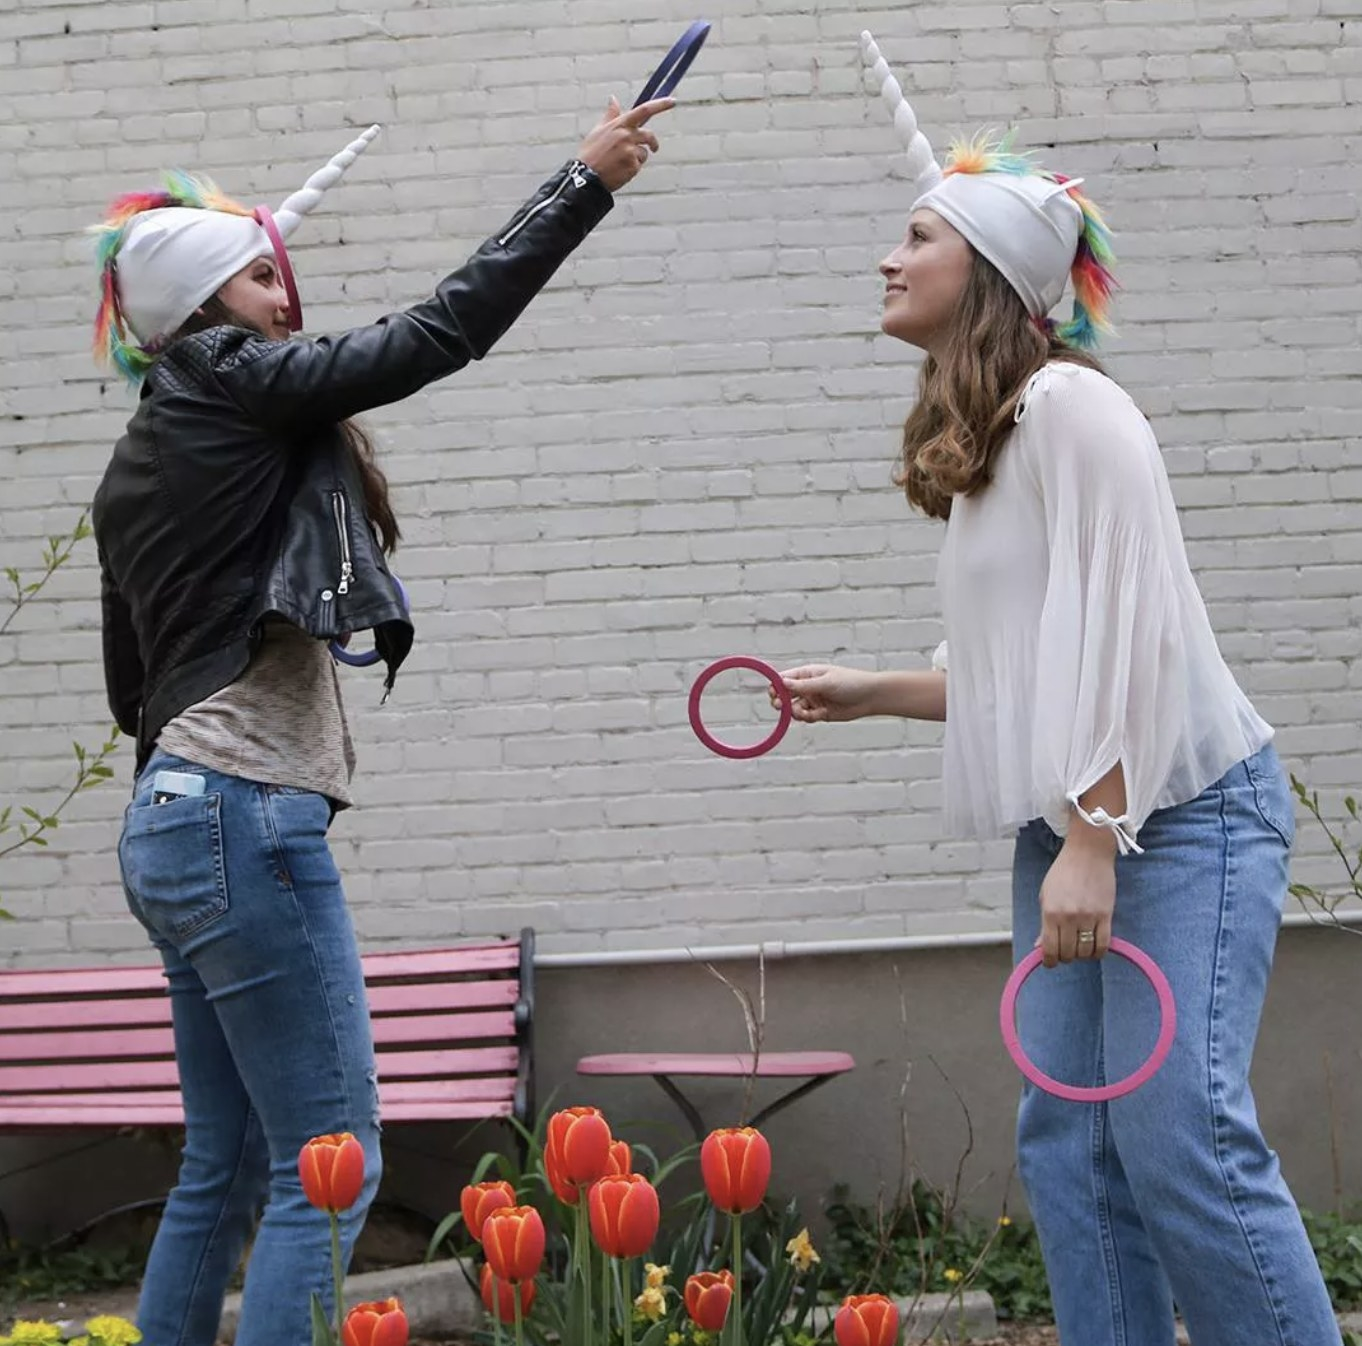 Two people playing the unicorn ring toss game